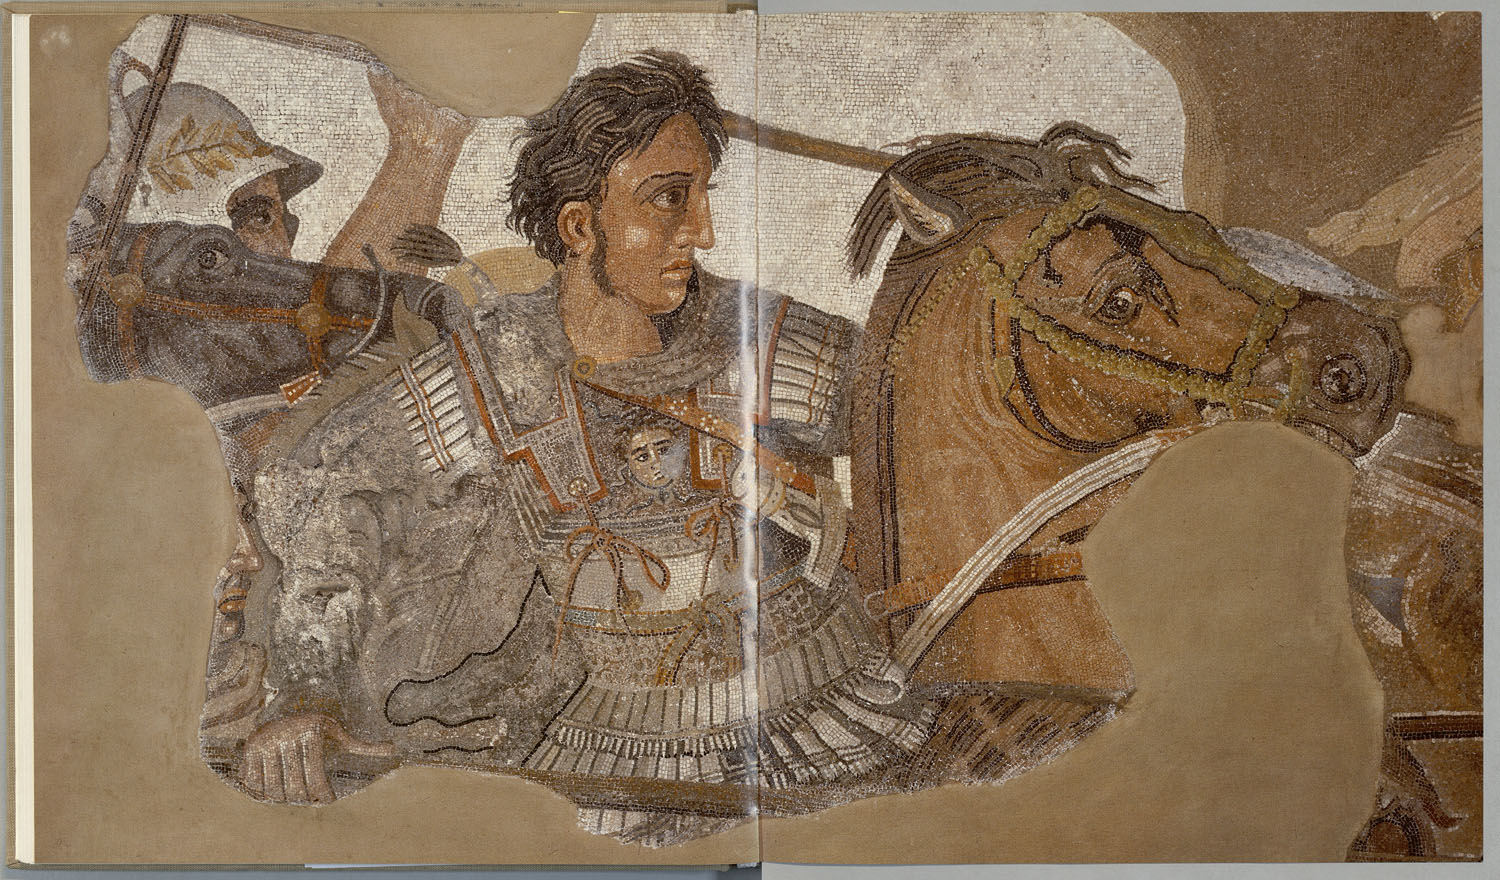 Detail of Alexander the Great from Alexander Mosaic